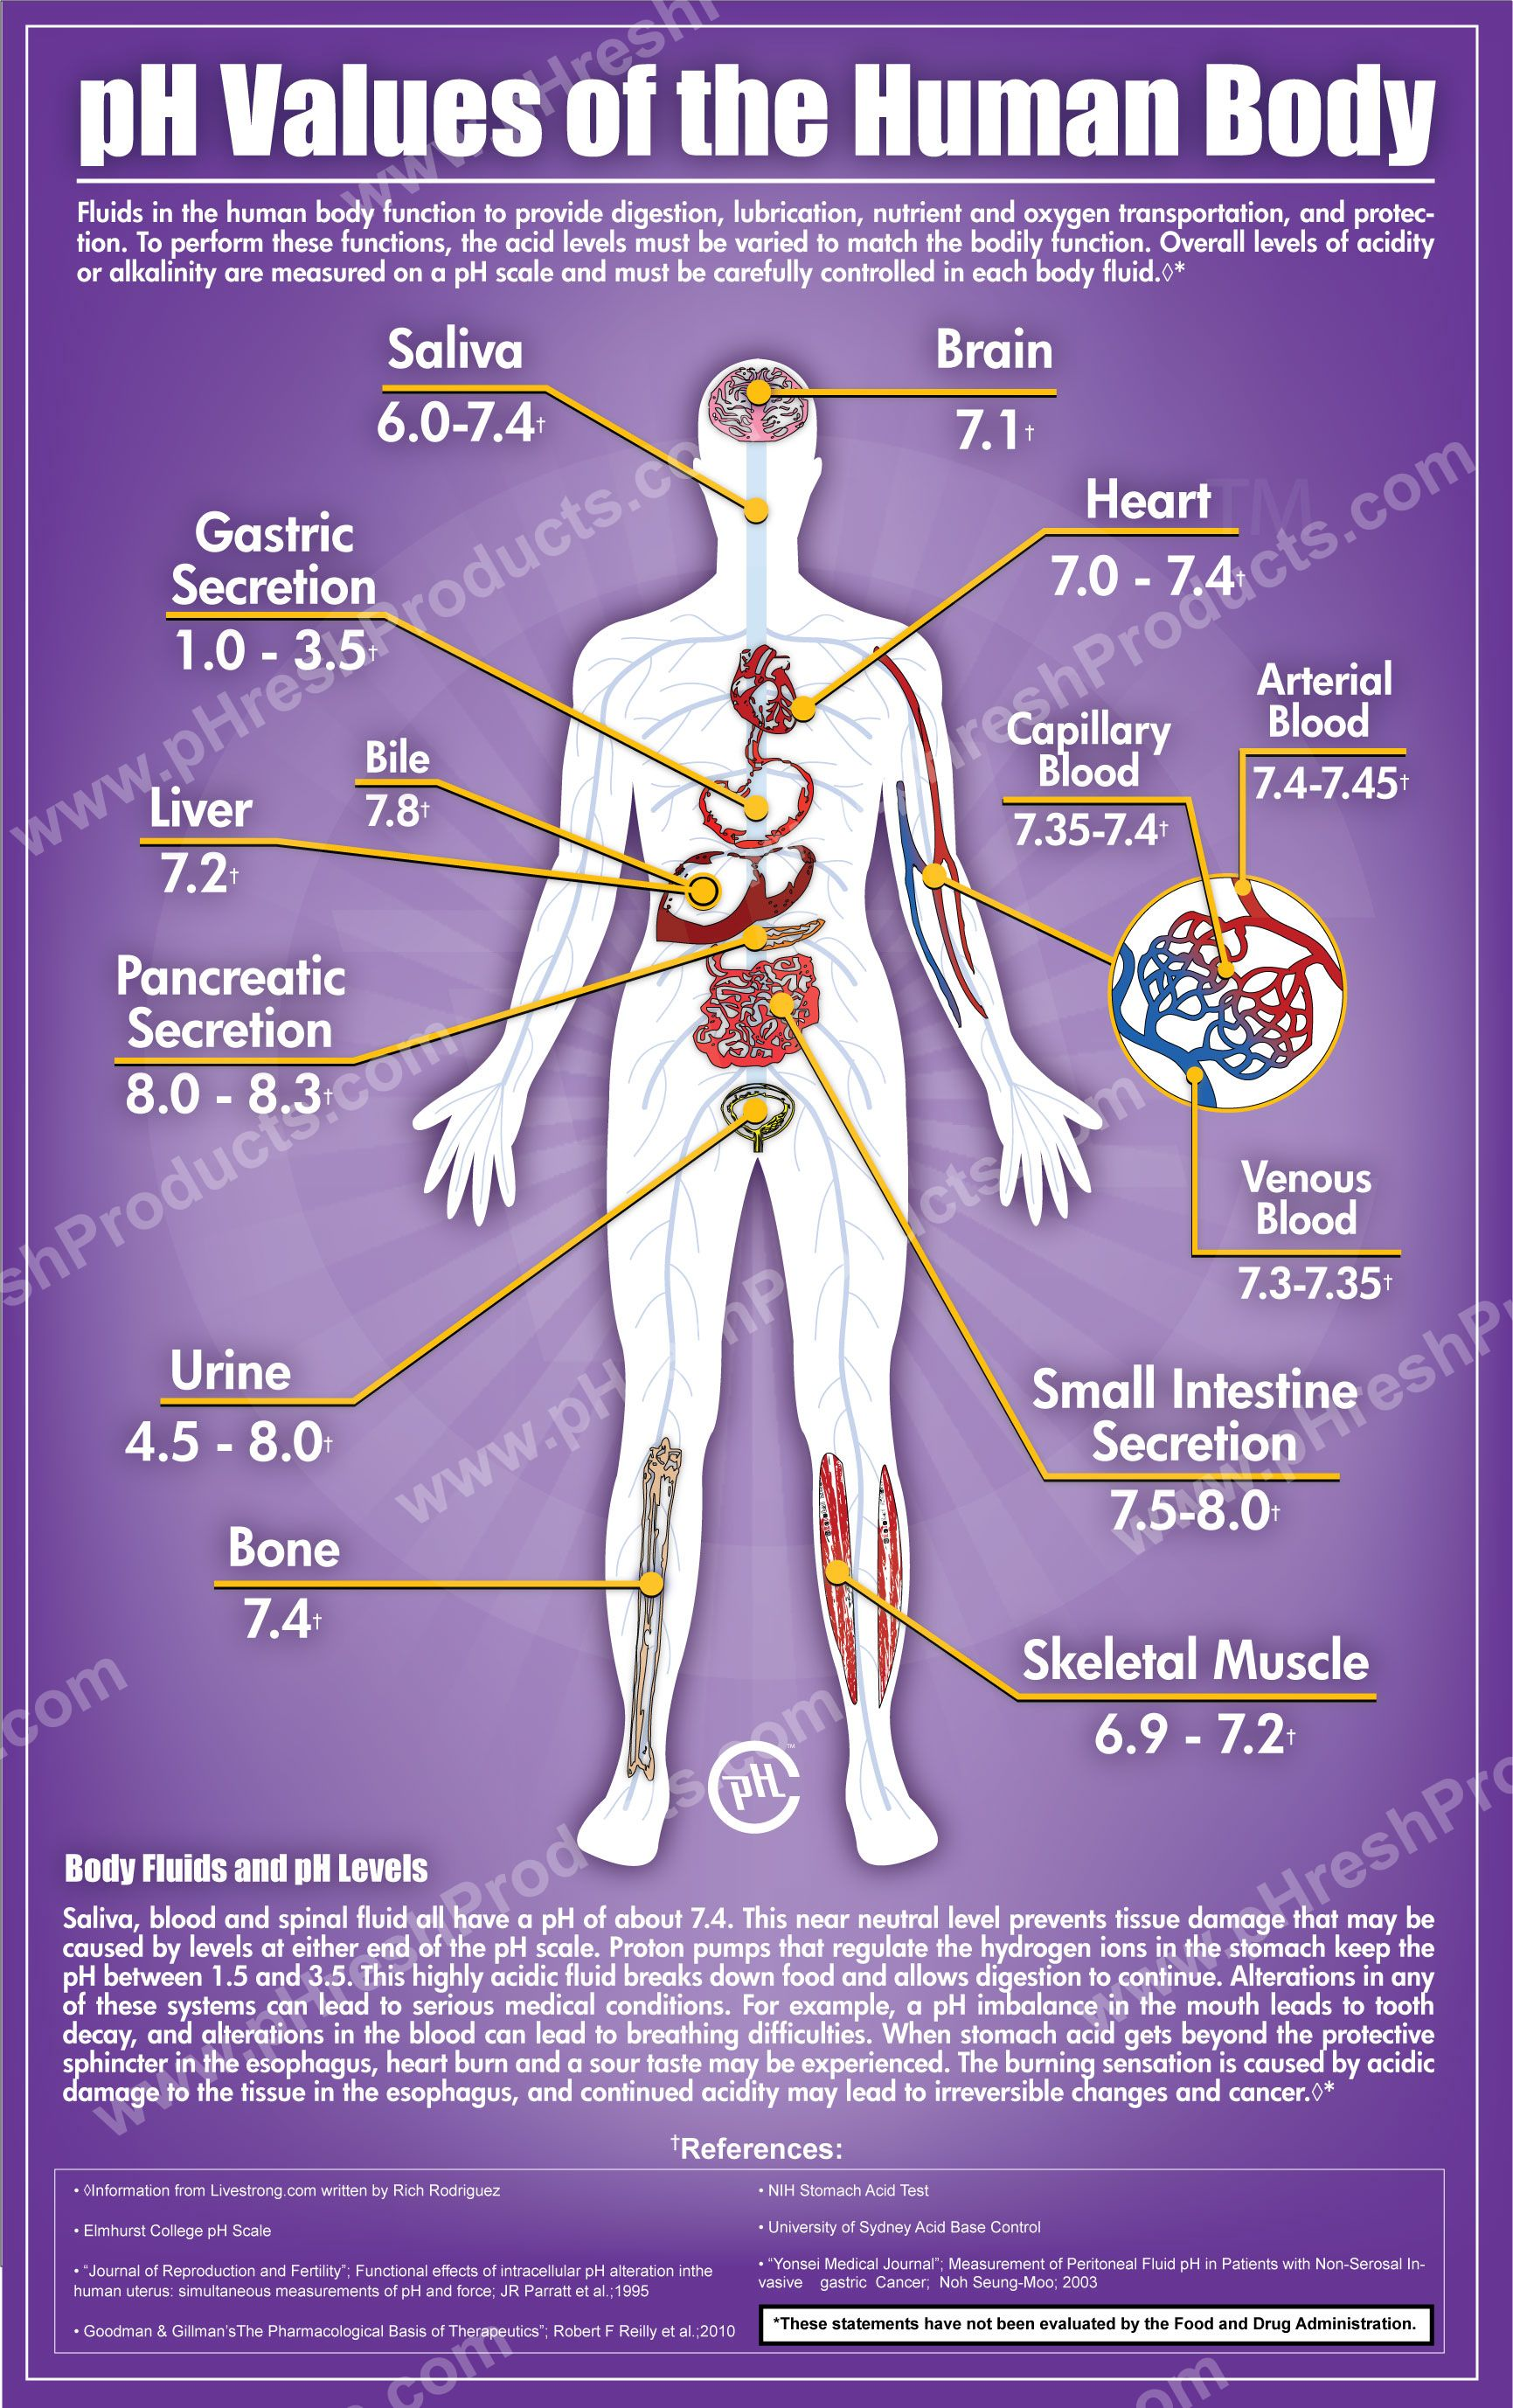 Ph values of the human body | Clinical Laboratory Science (Lab Rats) | Medical, Medical science